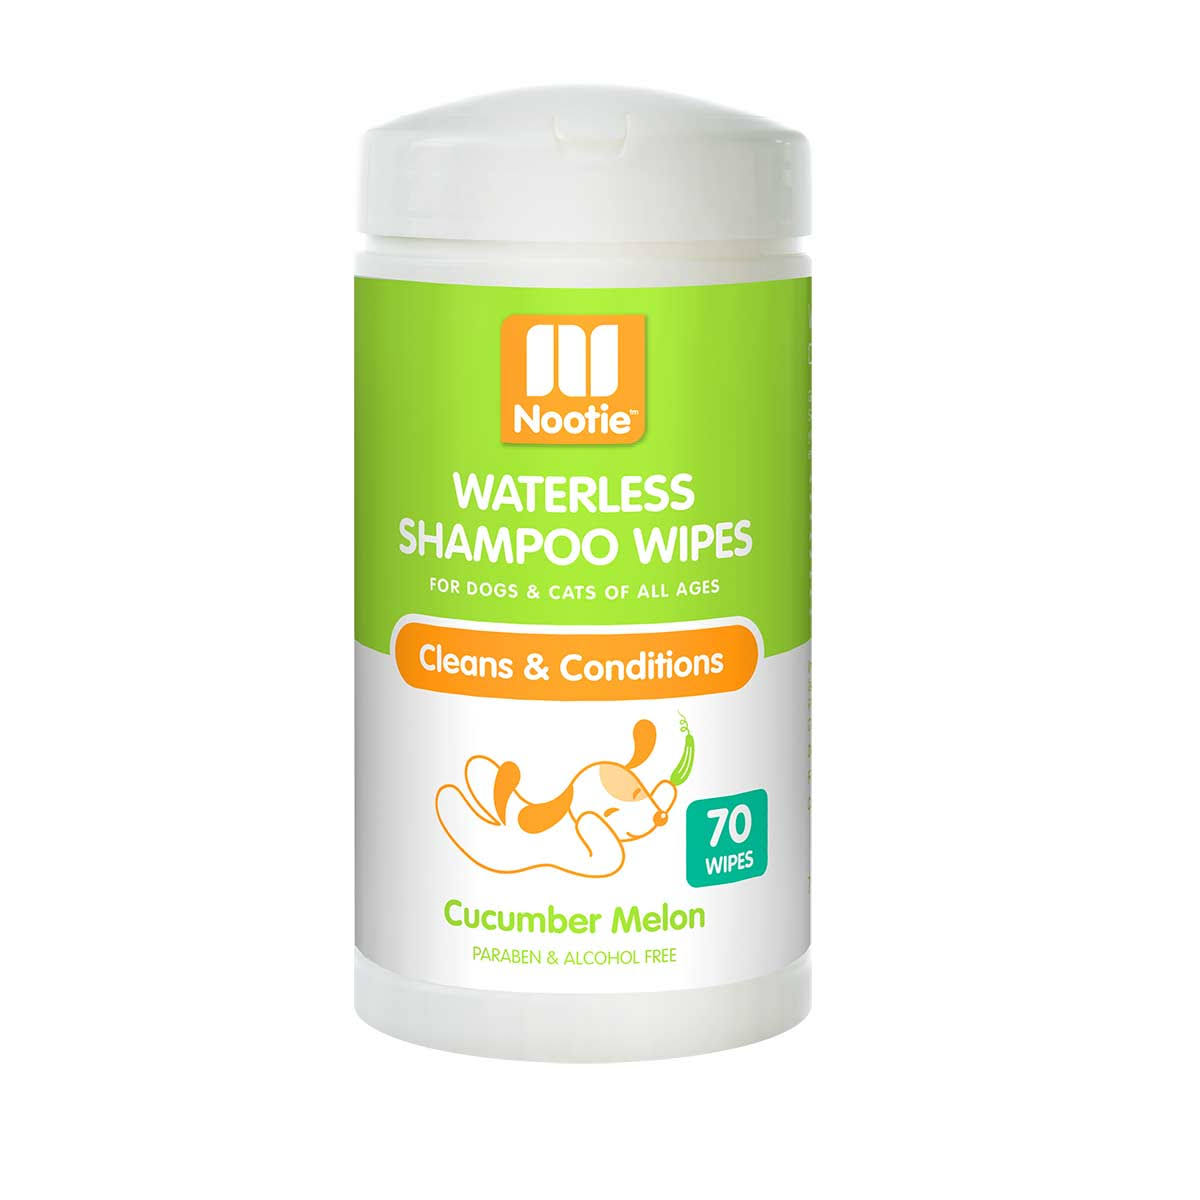 Nootie Waterless Shampoo Wipes – Cucumber Melon, 70 Count